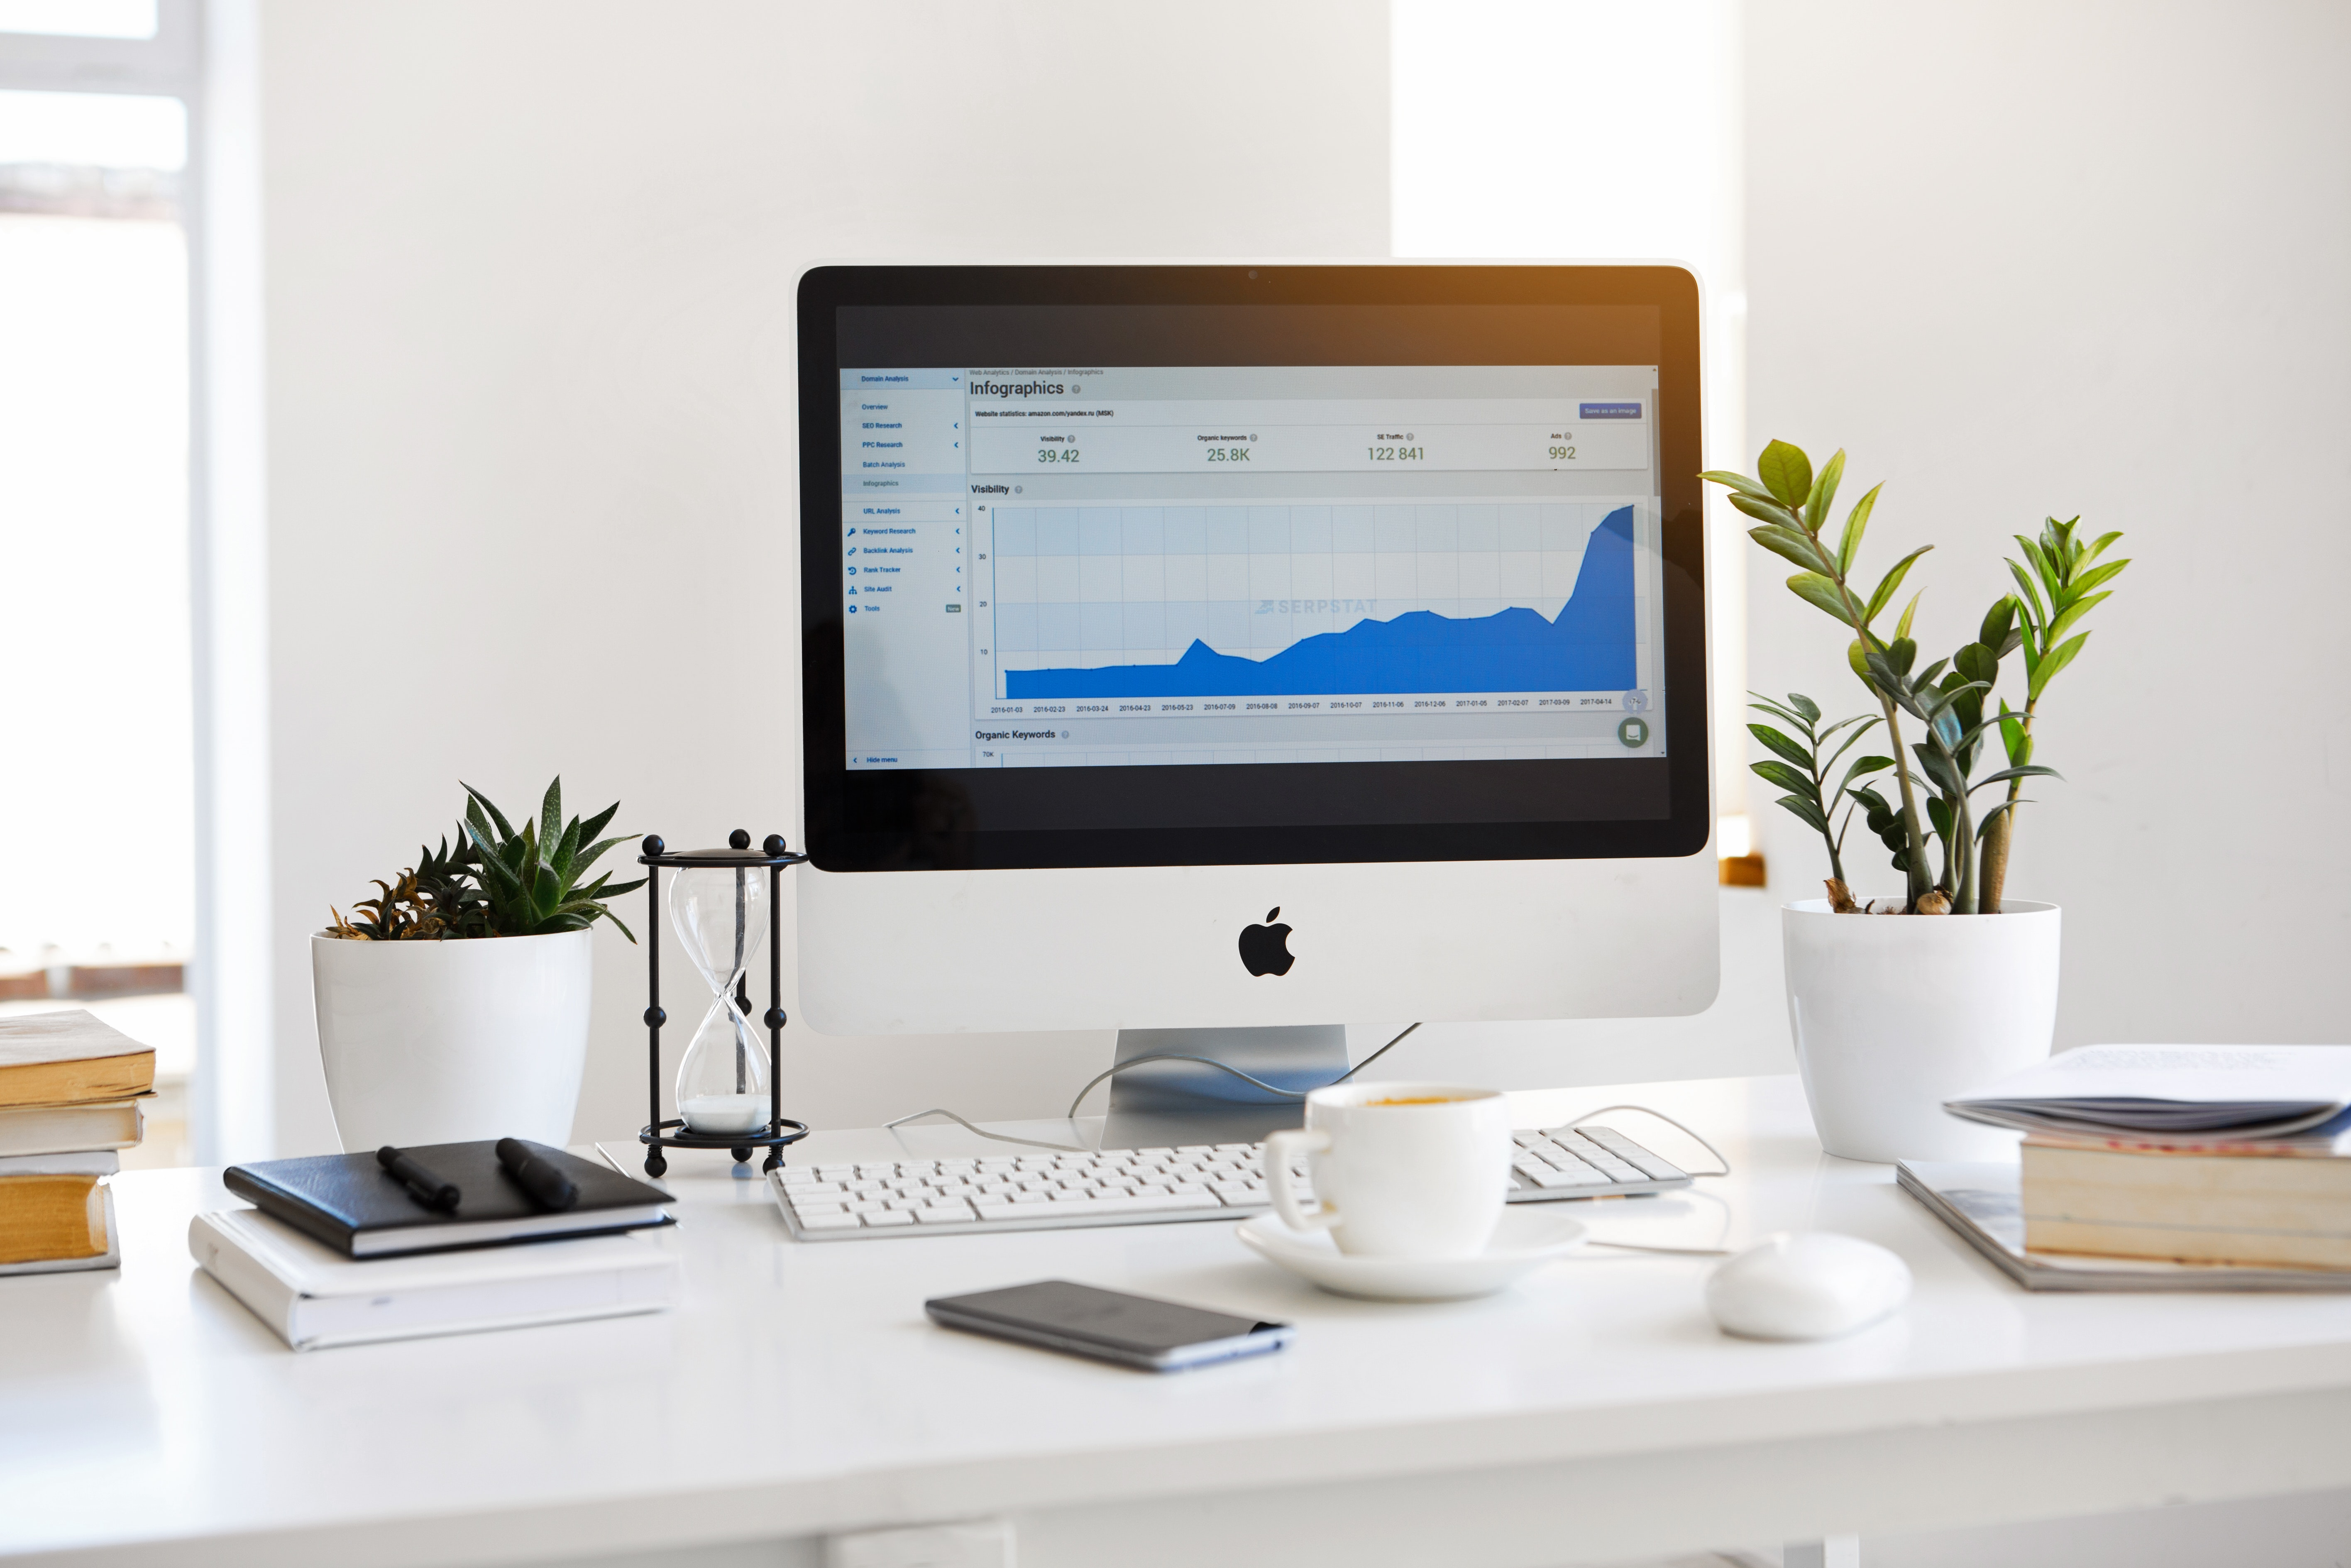 imac on table showing statistics boost due to plugins like WordPress multilingual for example